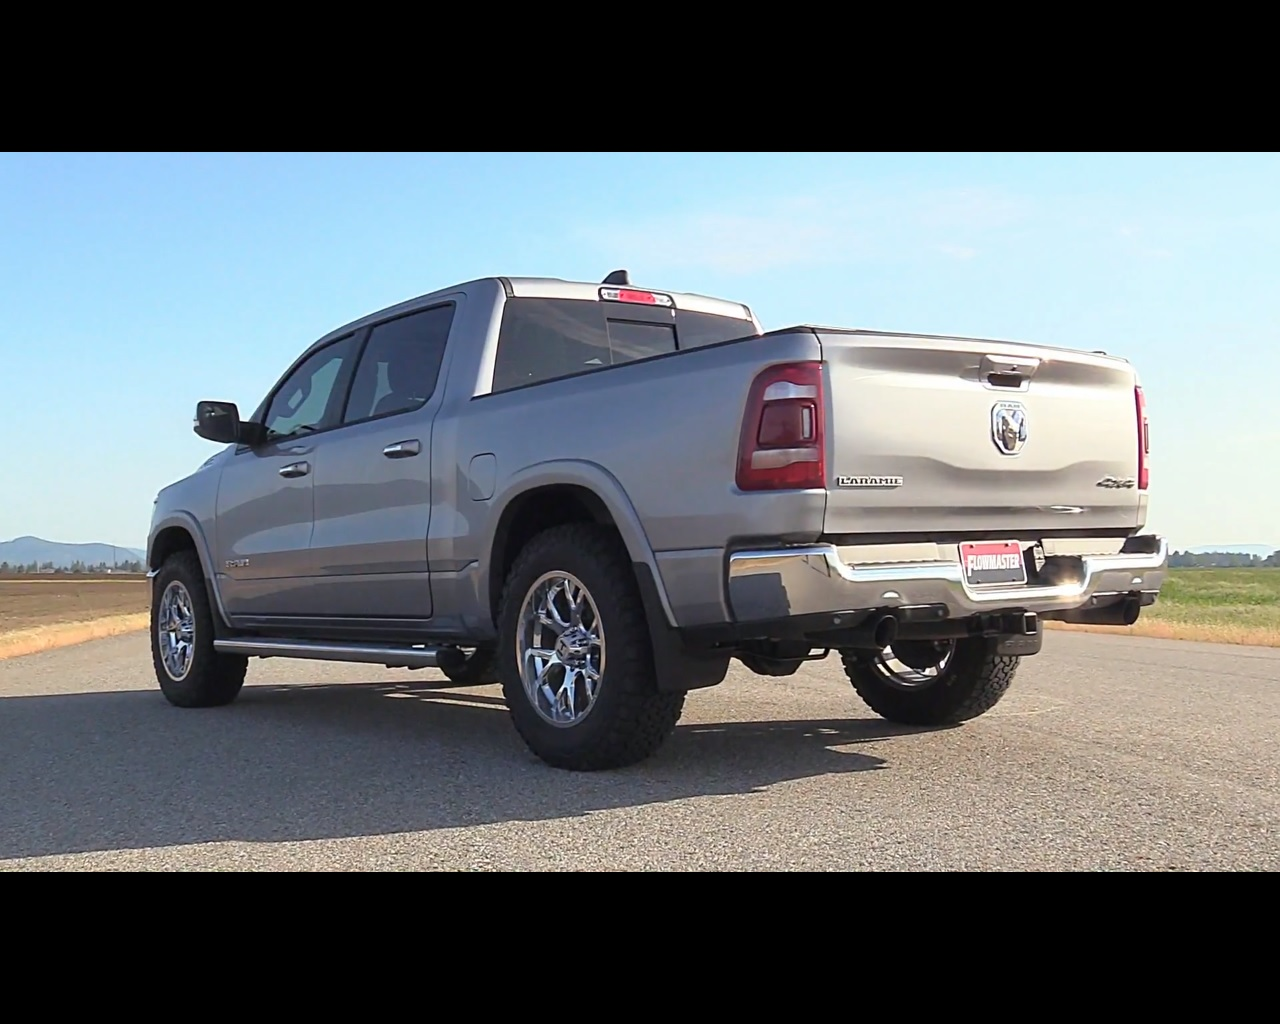 Ram 1500 Exhaust >> 2019 Ram 1500 Sounds Great With Flowmaster Cat Back Exhaust